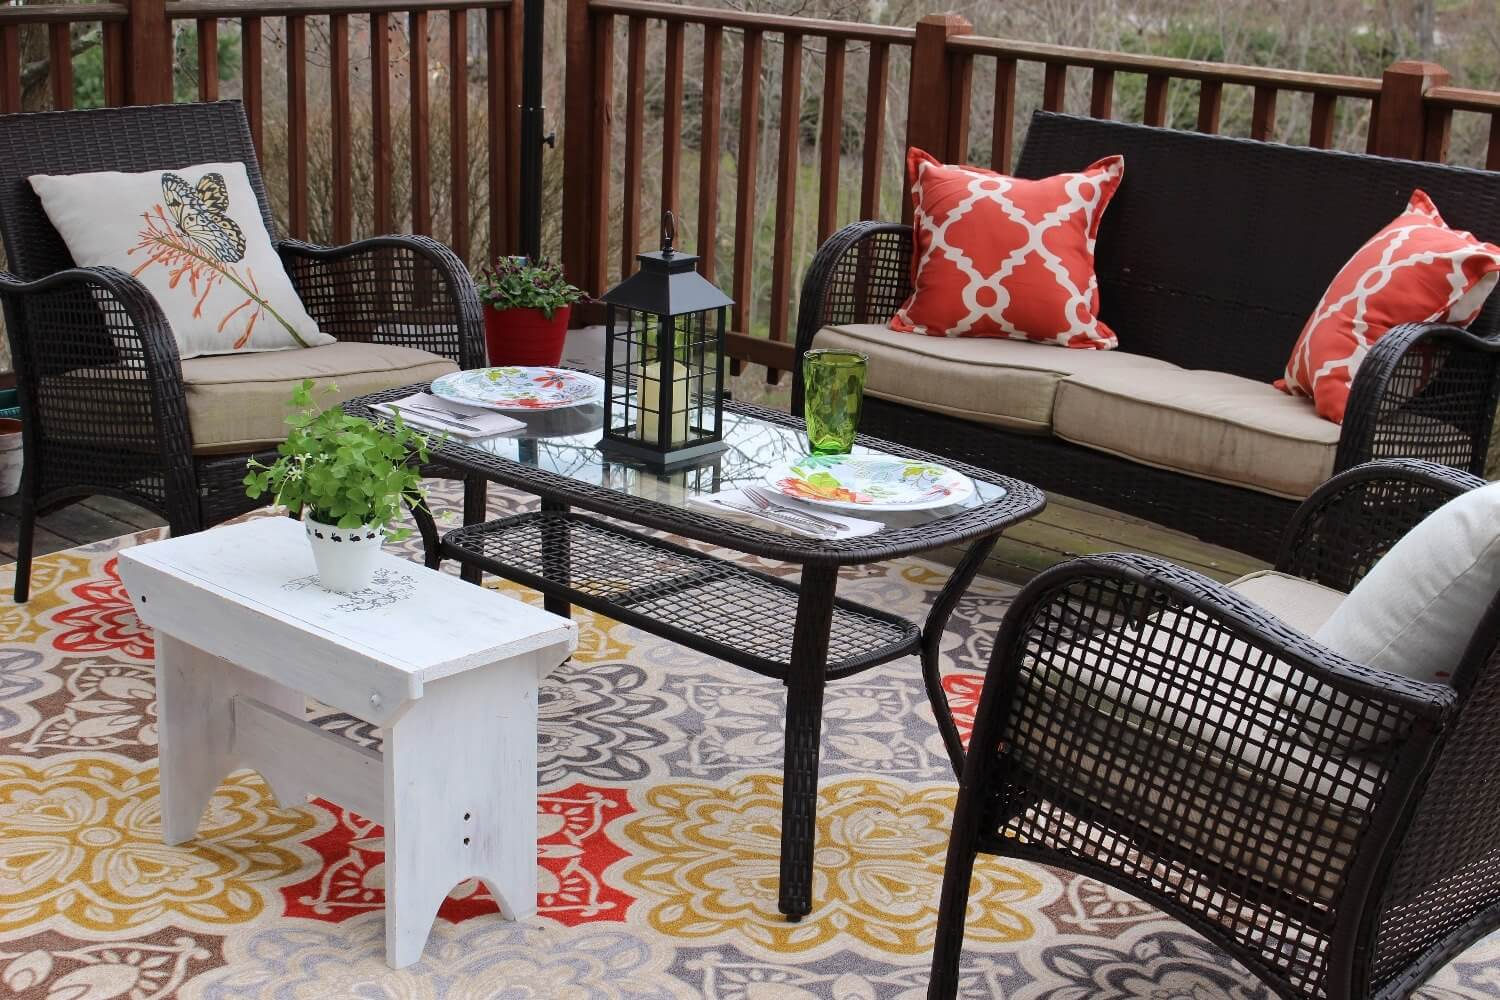 Decks are a great place to relax outside with family and friends